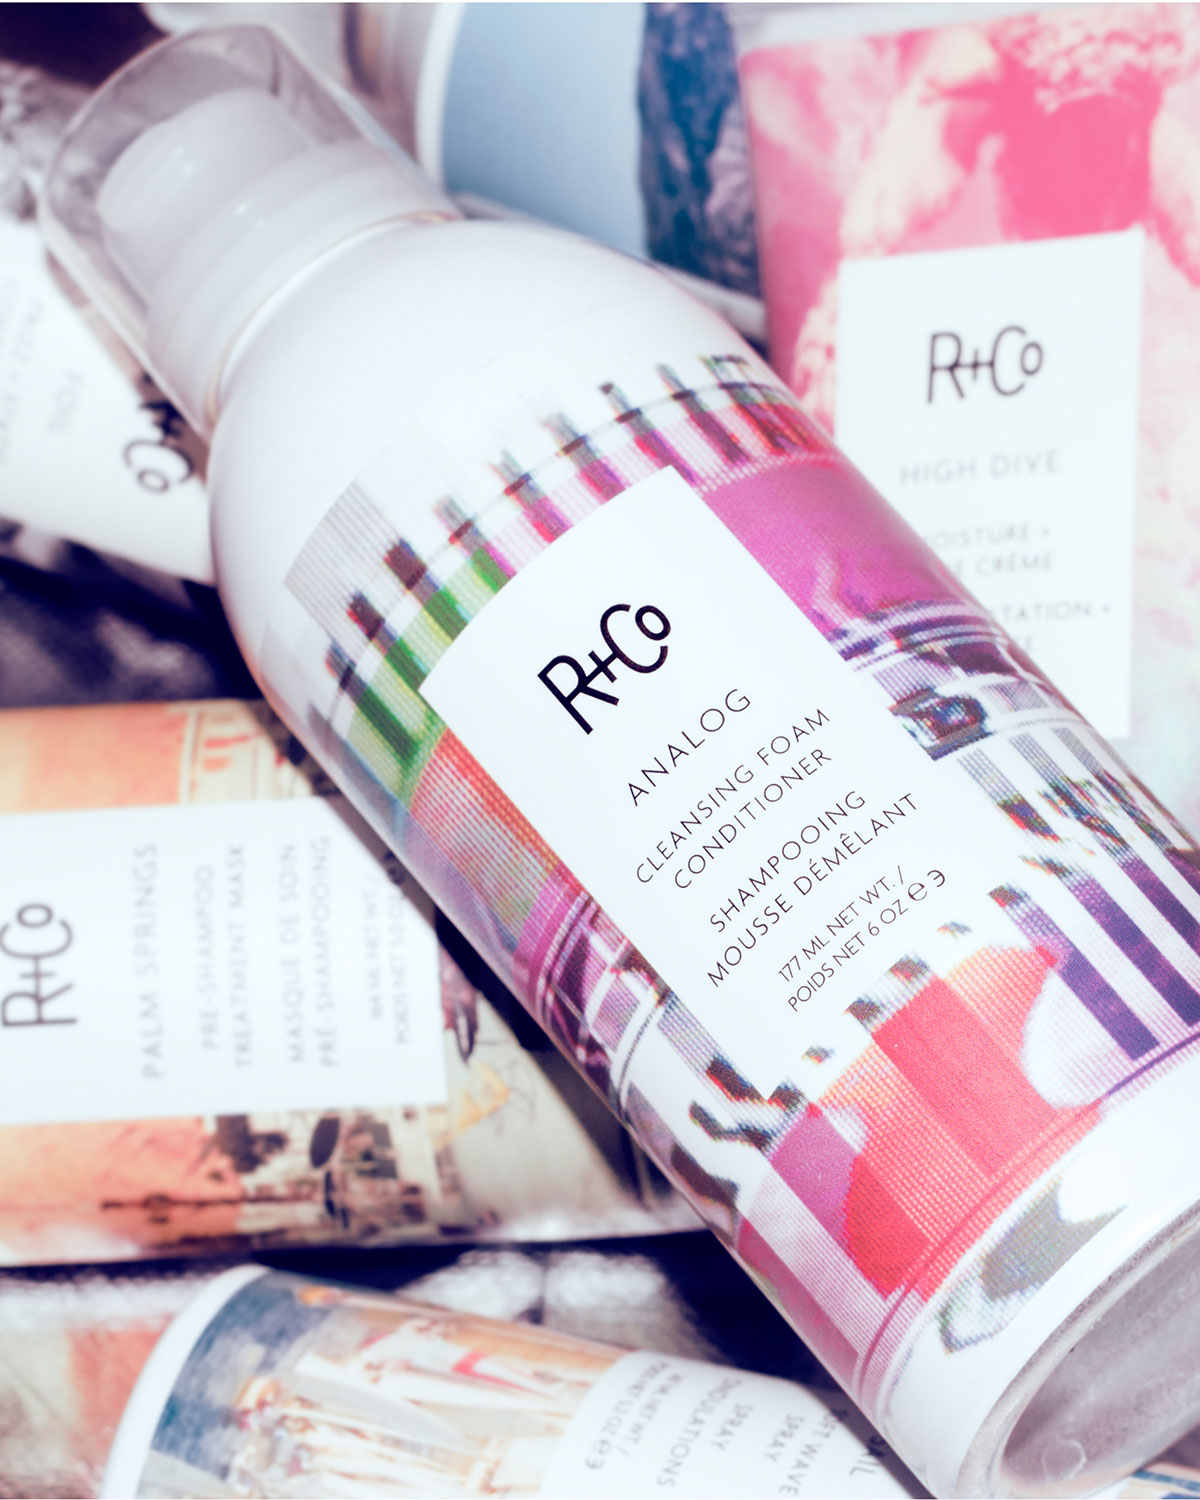 RCO Analog Cleansing Conditioner